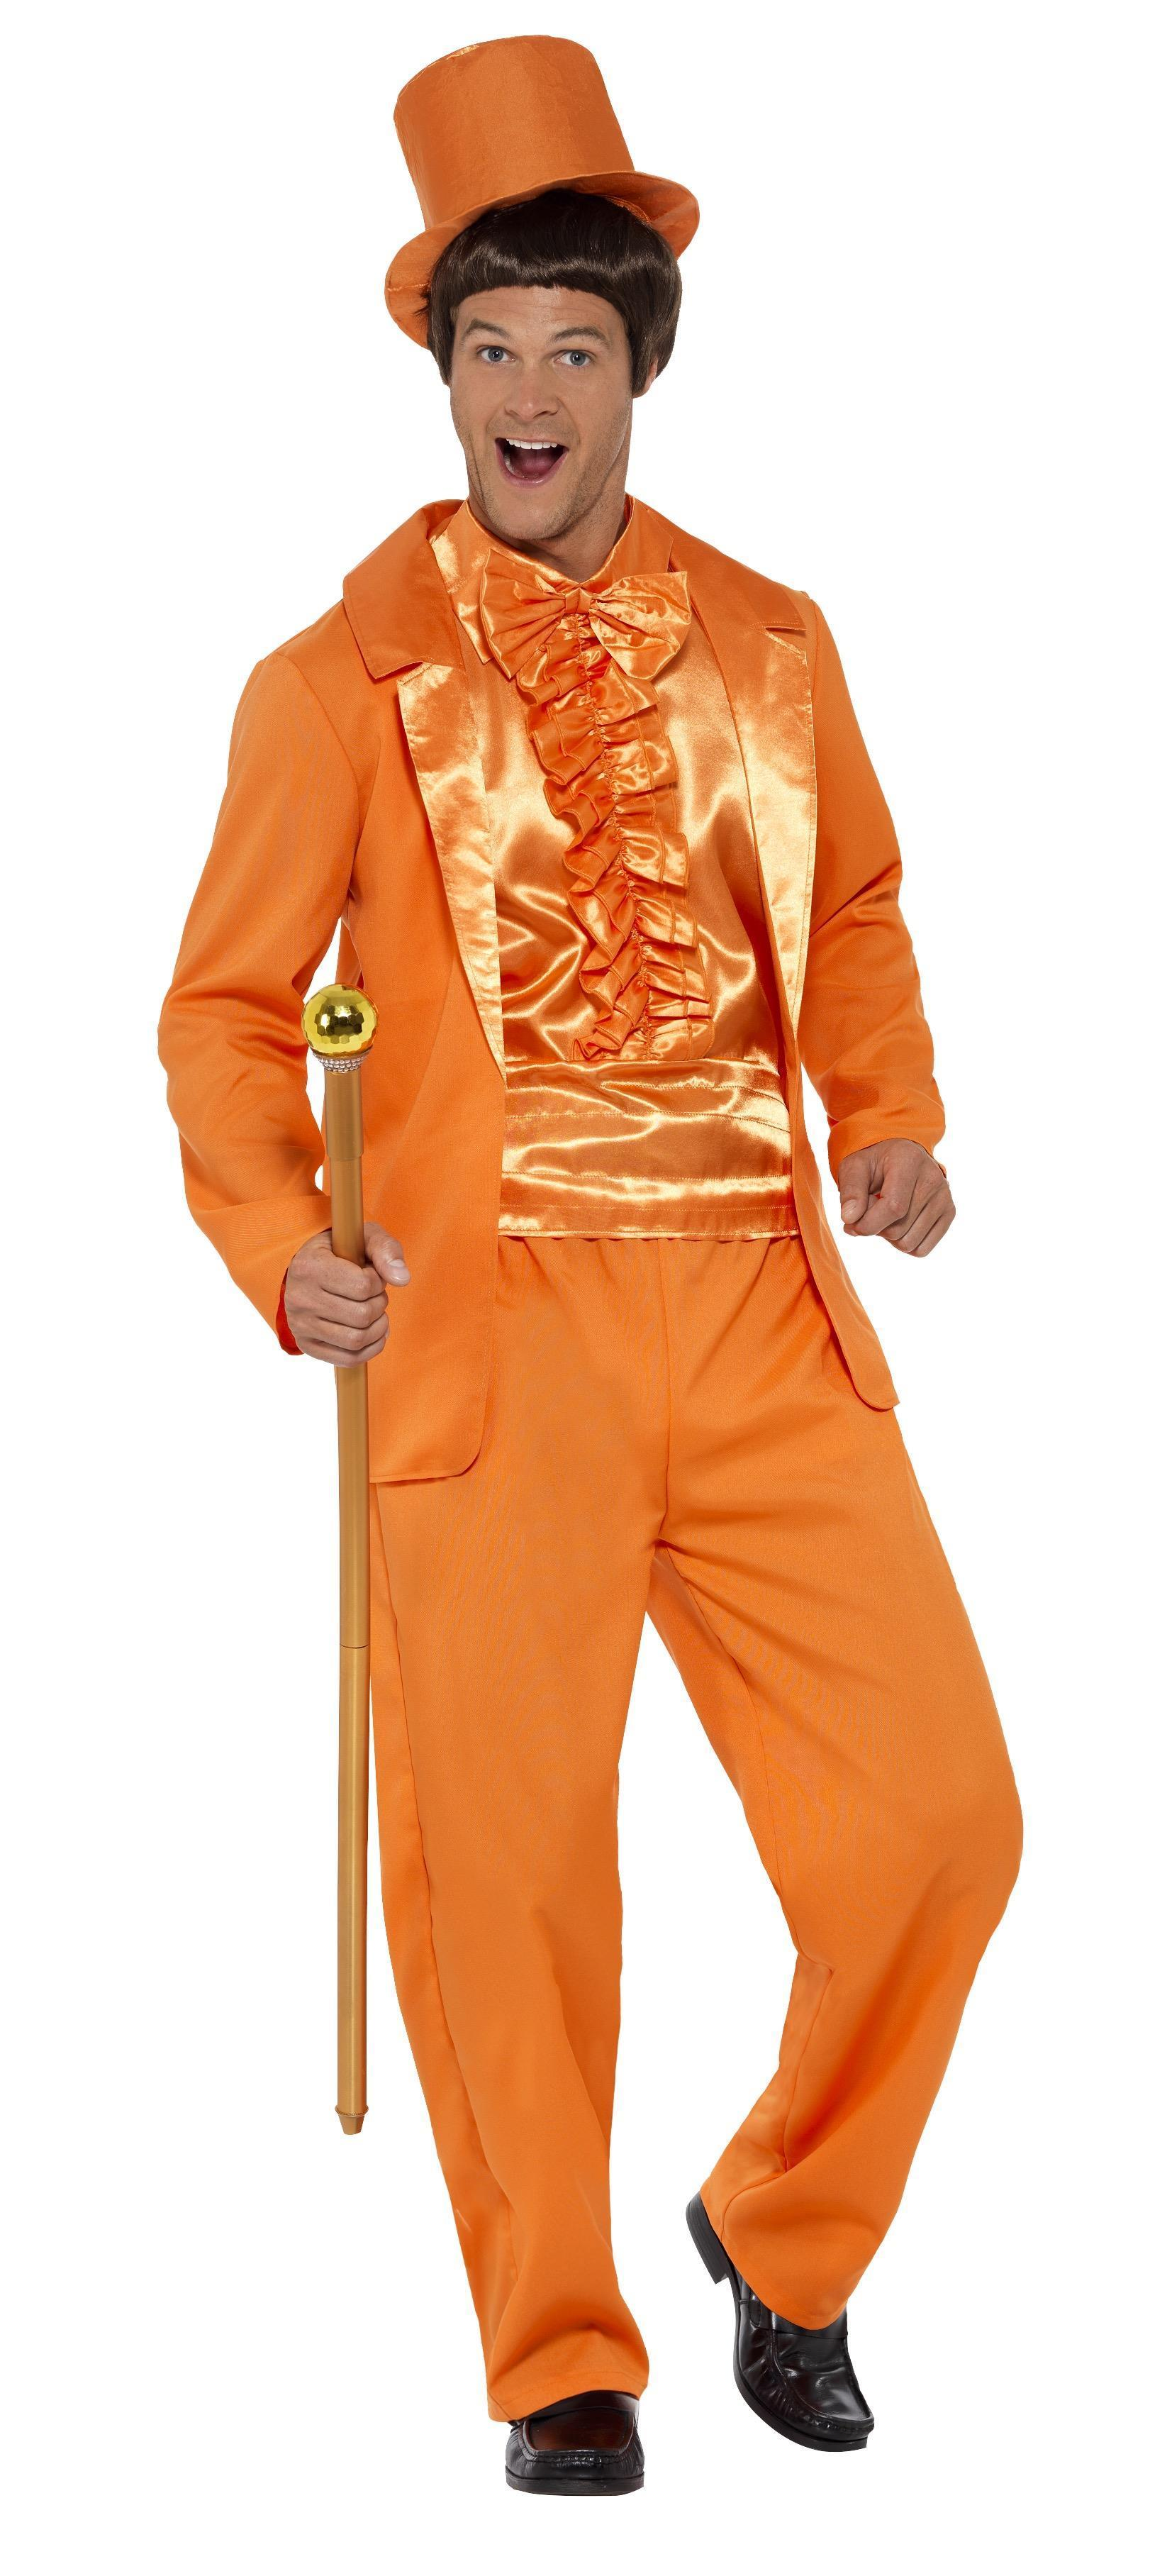 90s Stupid Tuxedo Costume Orange